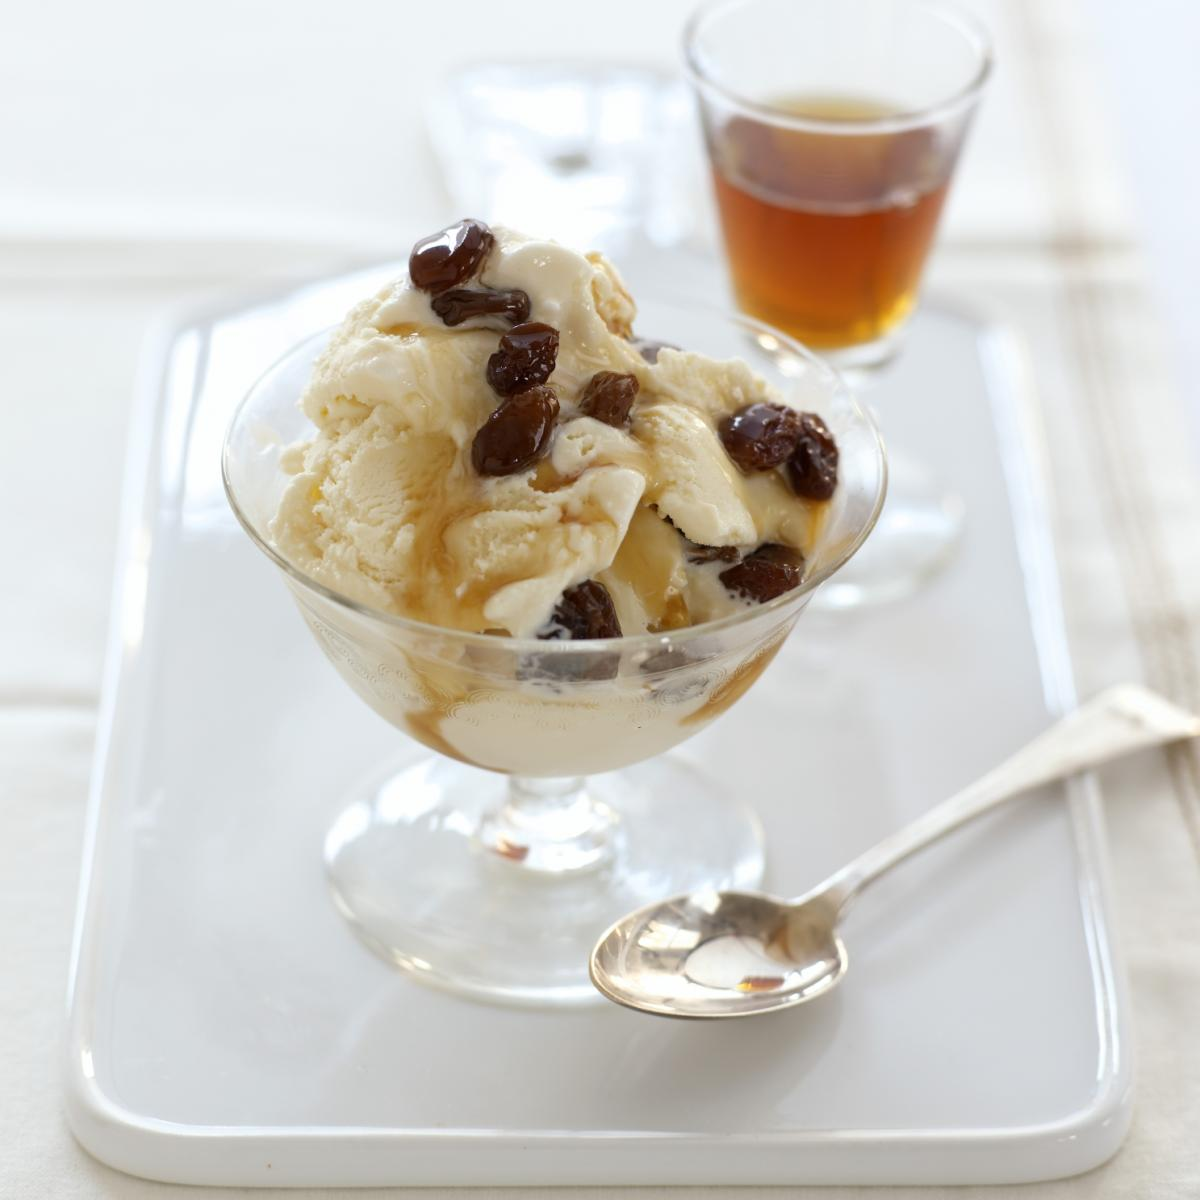 A picture of Delia's Vanilla Bean Ice Cream with Raisins Soaked in Pedro Ximenez Sherry recipe